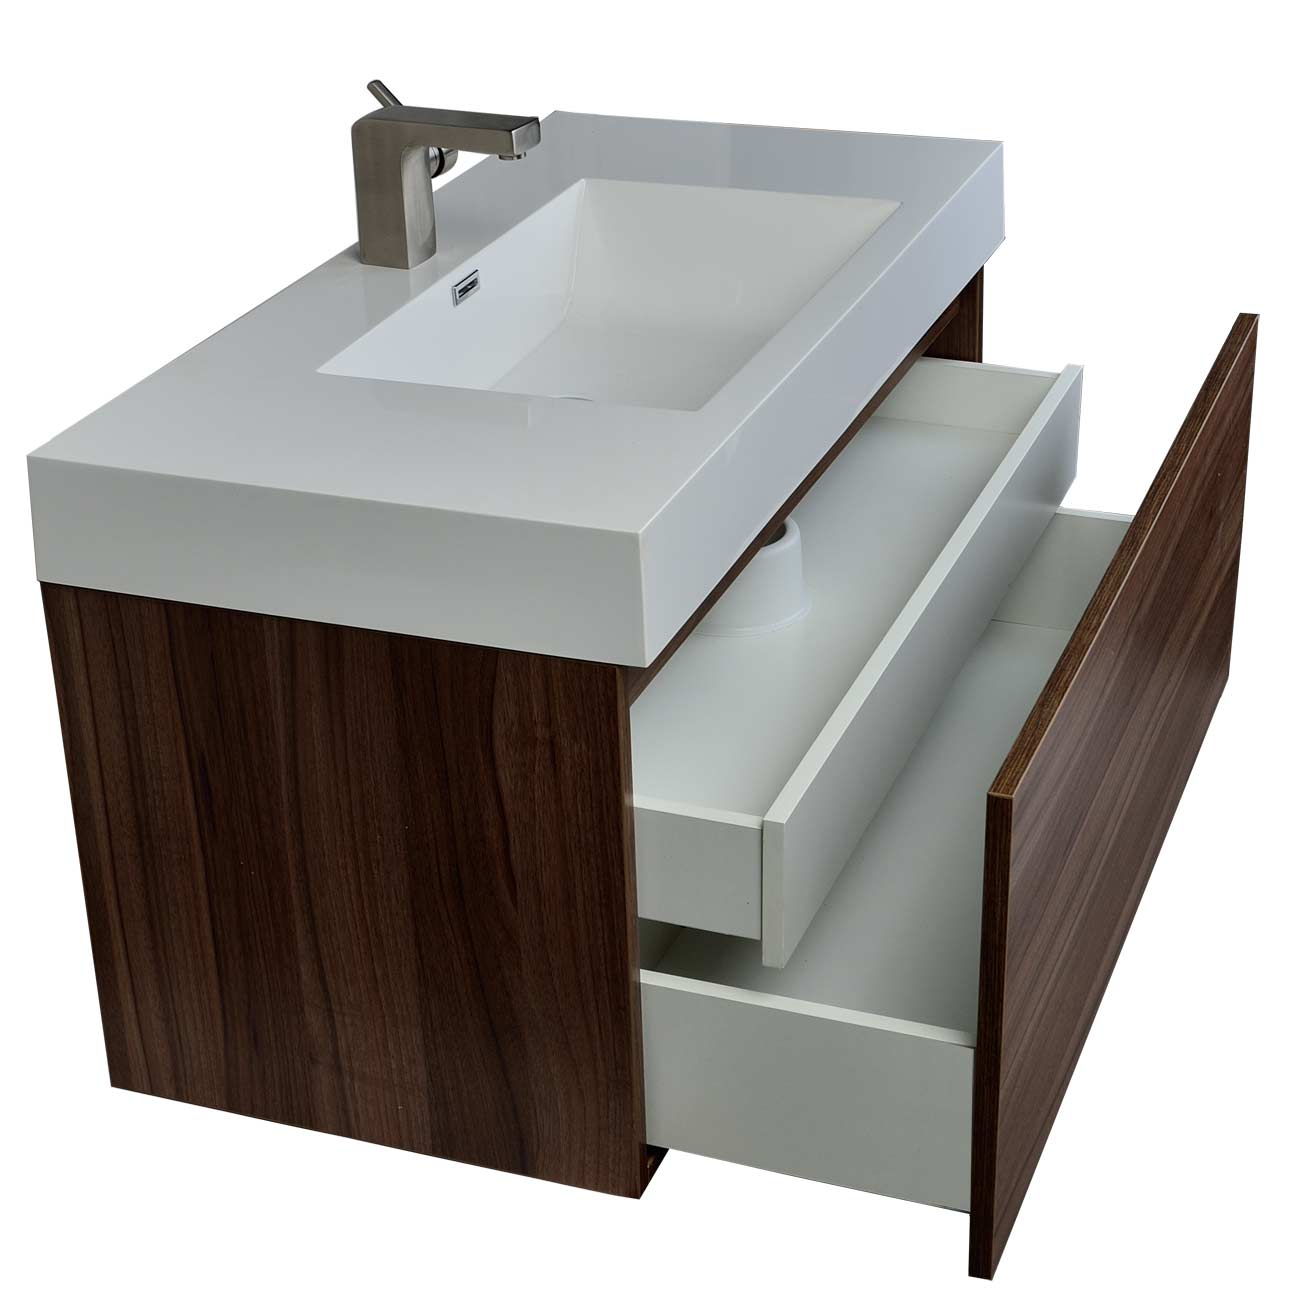 Modern bathroom vanity in walnut finish tn a1000 wn for Contemporary bathroom sinks and vanities